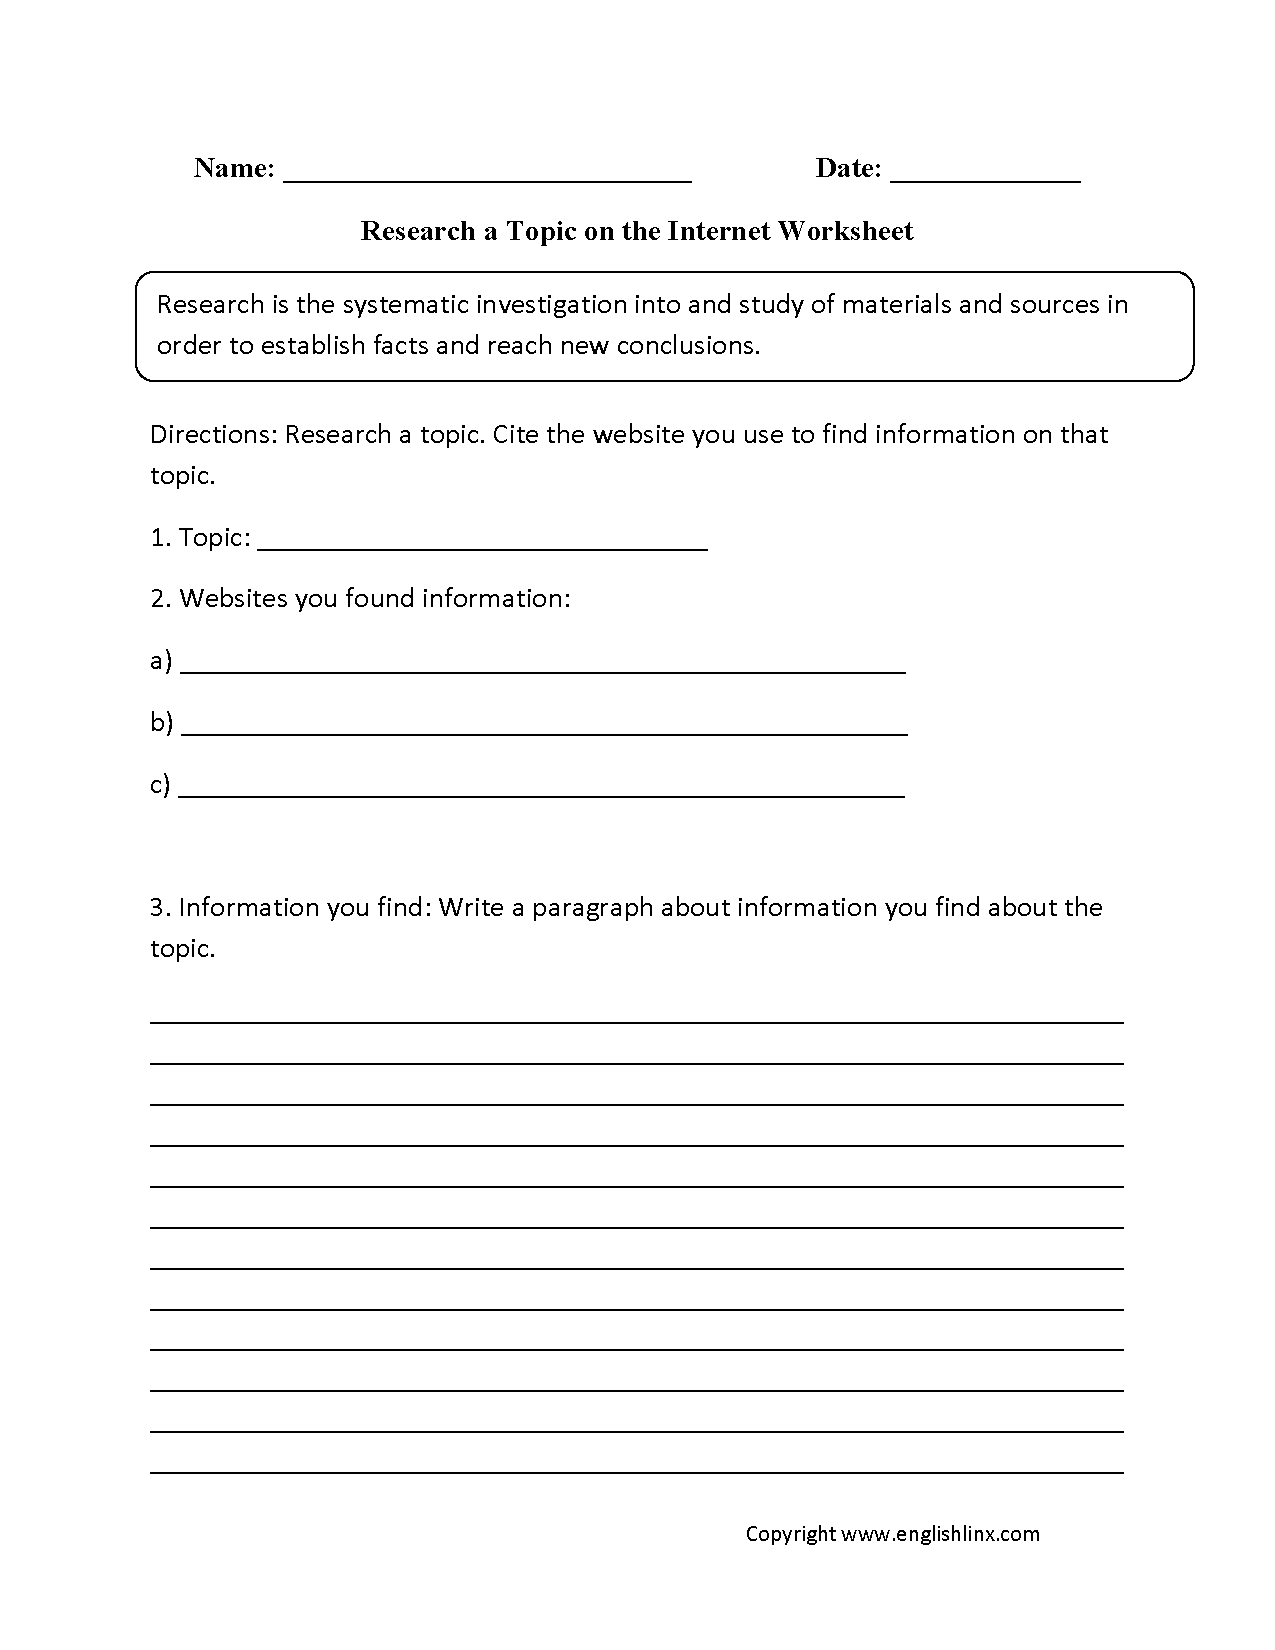 Aldiablosus  Picturesque Englishlinxcom  Research Worksheets With Heavenly On The Internet Worksheet With Adorable  Digit Addition Worksheets Also Th Grade Algebra Worksheets In Addition Number  Worksheets And Blank Handwriting Worksheets As Well As Color By Number Worksheets Free Additionally Softschools Worksheets From Englishlinxcom With Aldiablosus  Heavenly Englishlinxcom  Research Worksheets With Adorable On The Internet Worksheet And Picturesque  Digit Addition Worksheets Also Th Grade Algebra Worksheets In Addition Number  Worksheets From Englishlinxcom